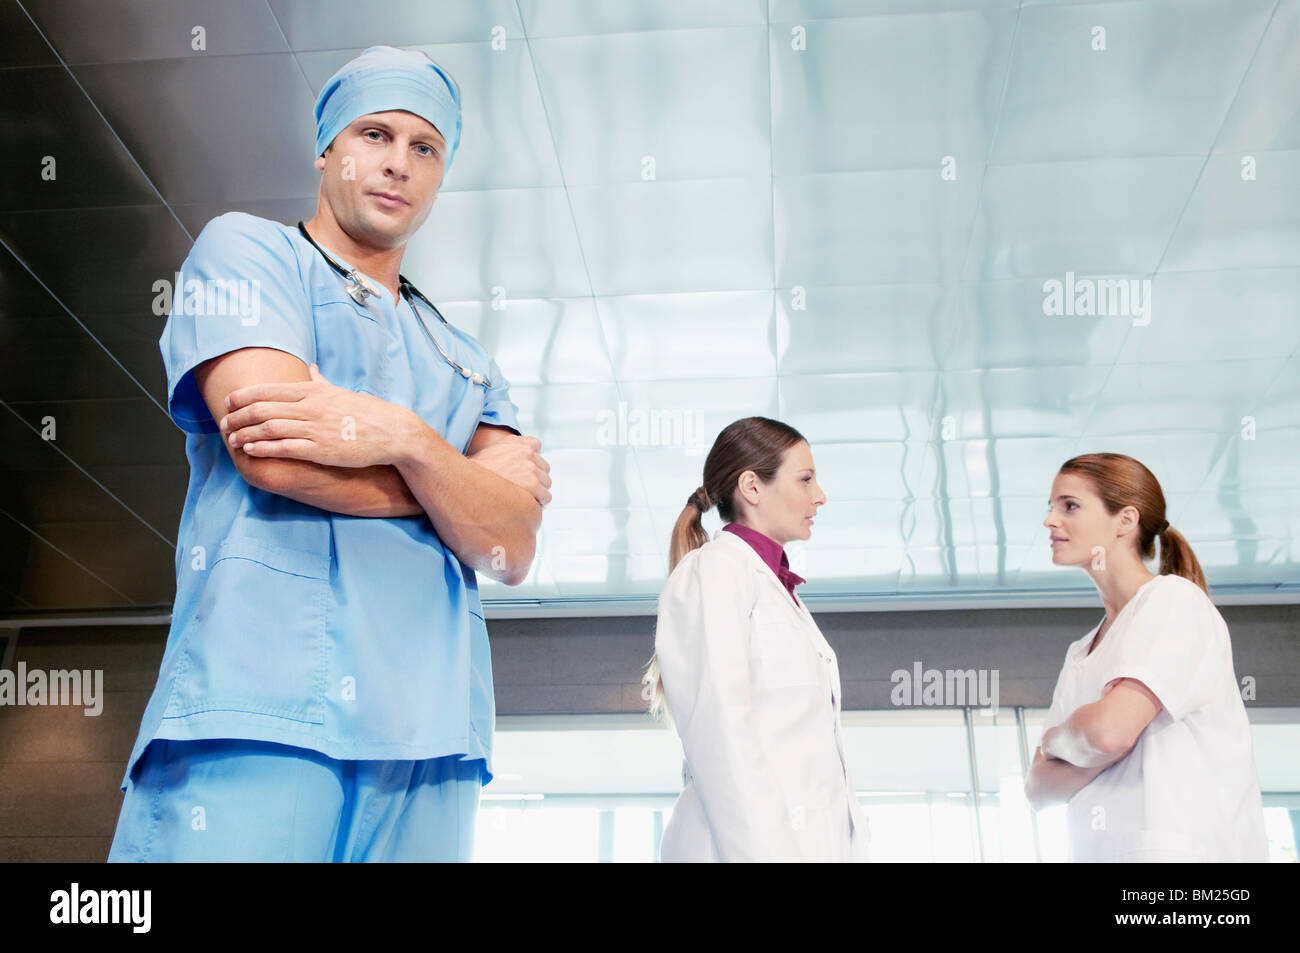 Male surgeon standing with his colleagues discussing in the background - Stock Image